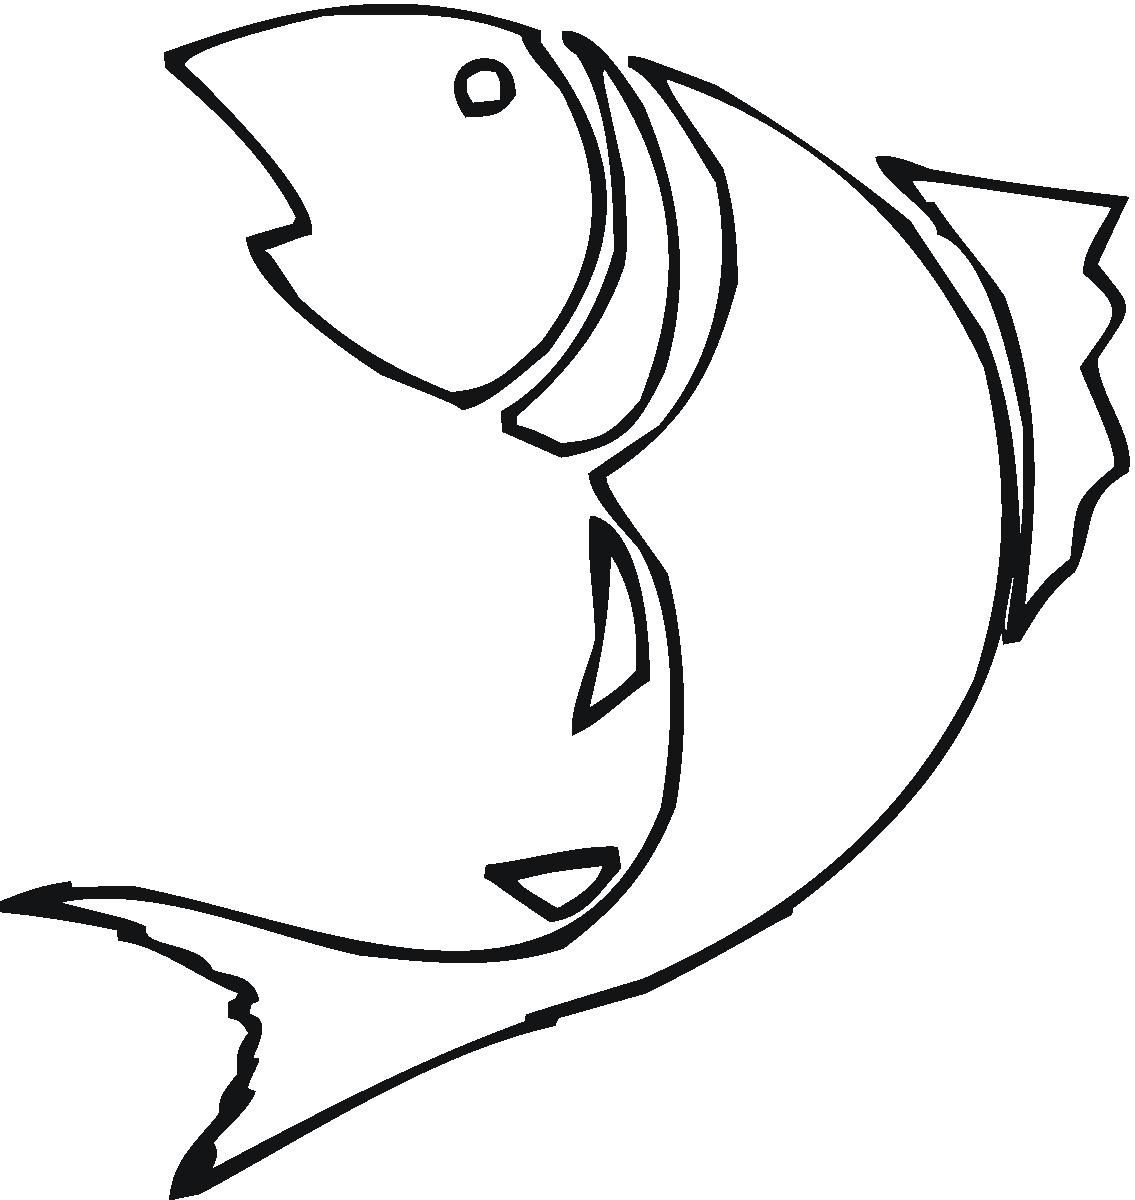 1135x1200 Fish Outline Image Detailed Illustration Of A Star Royalty Free